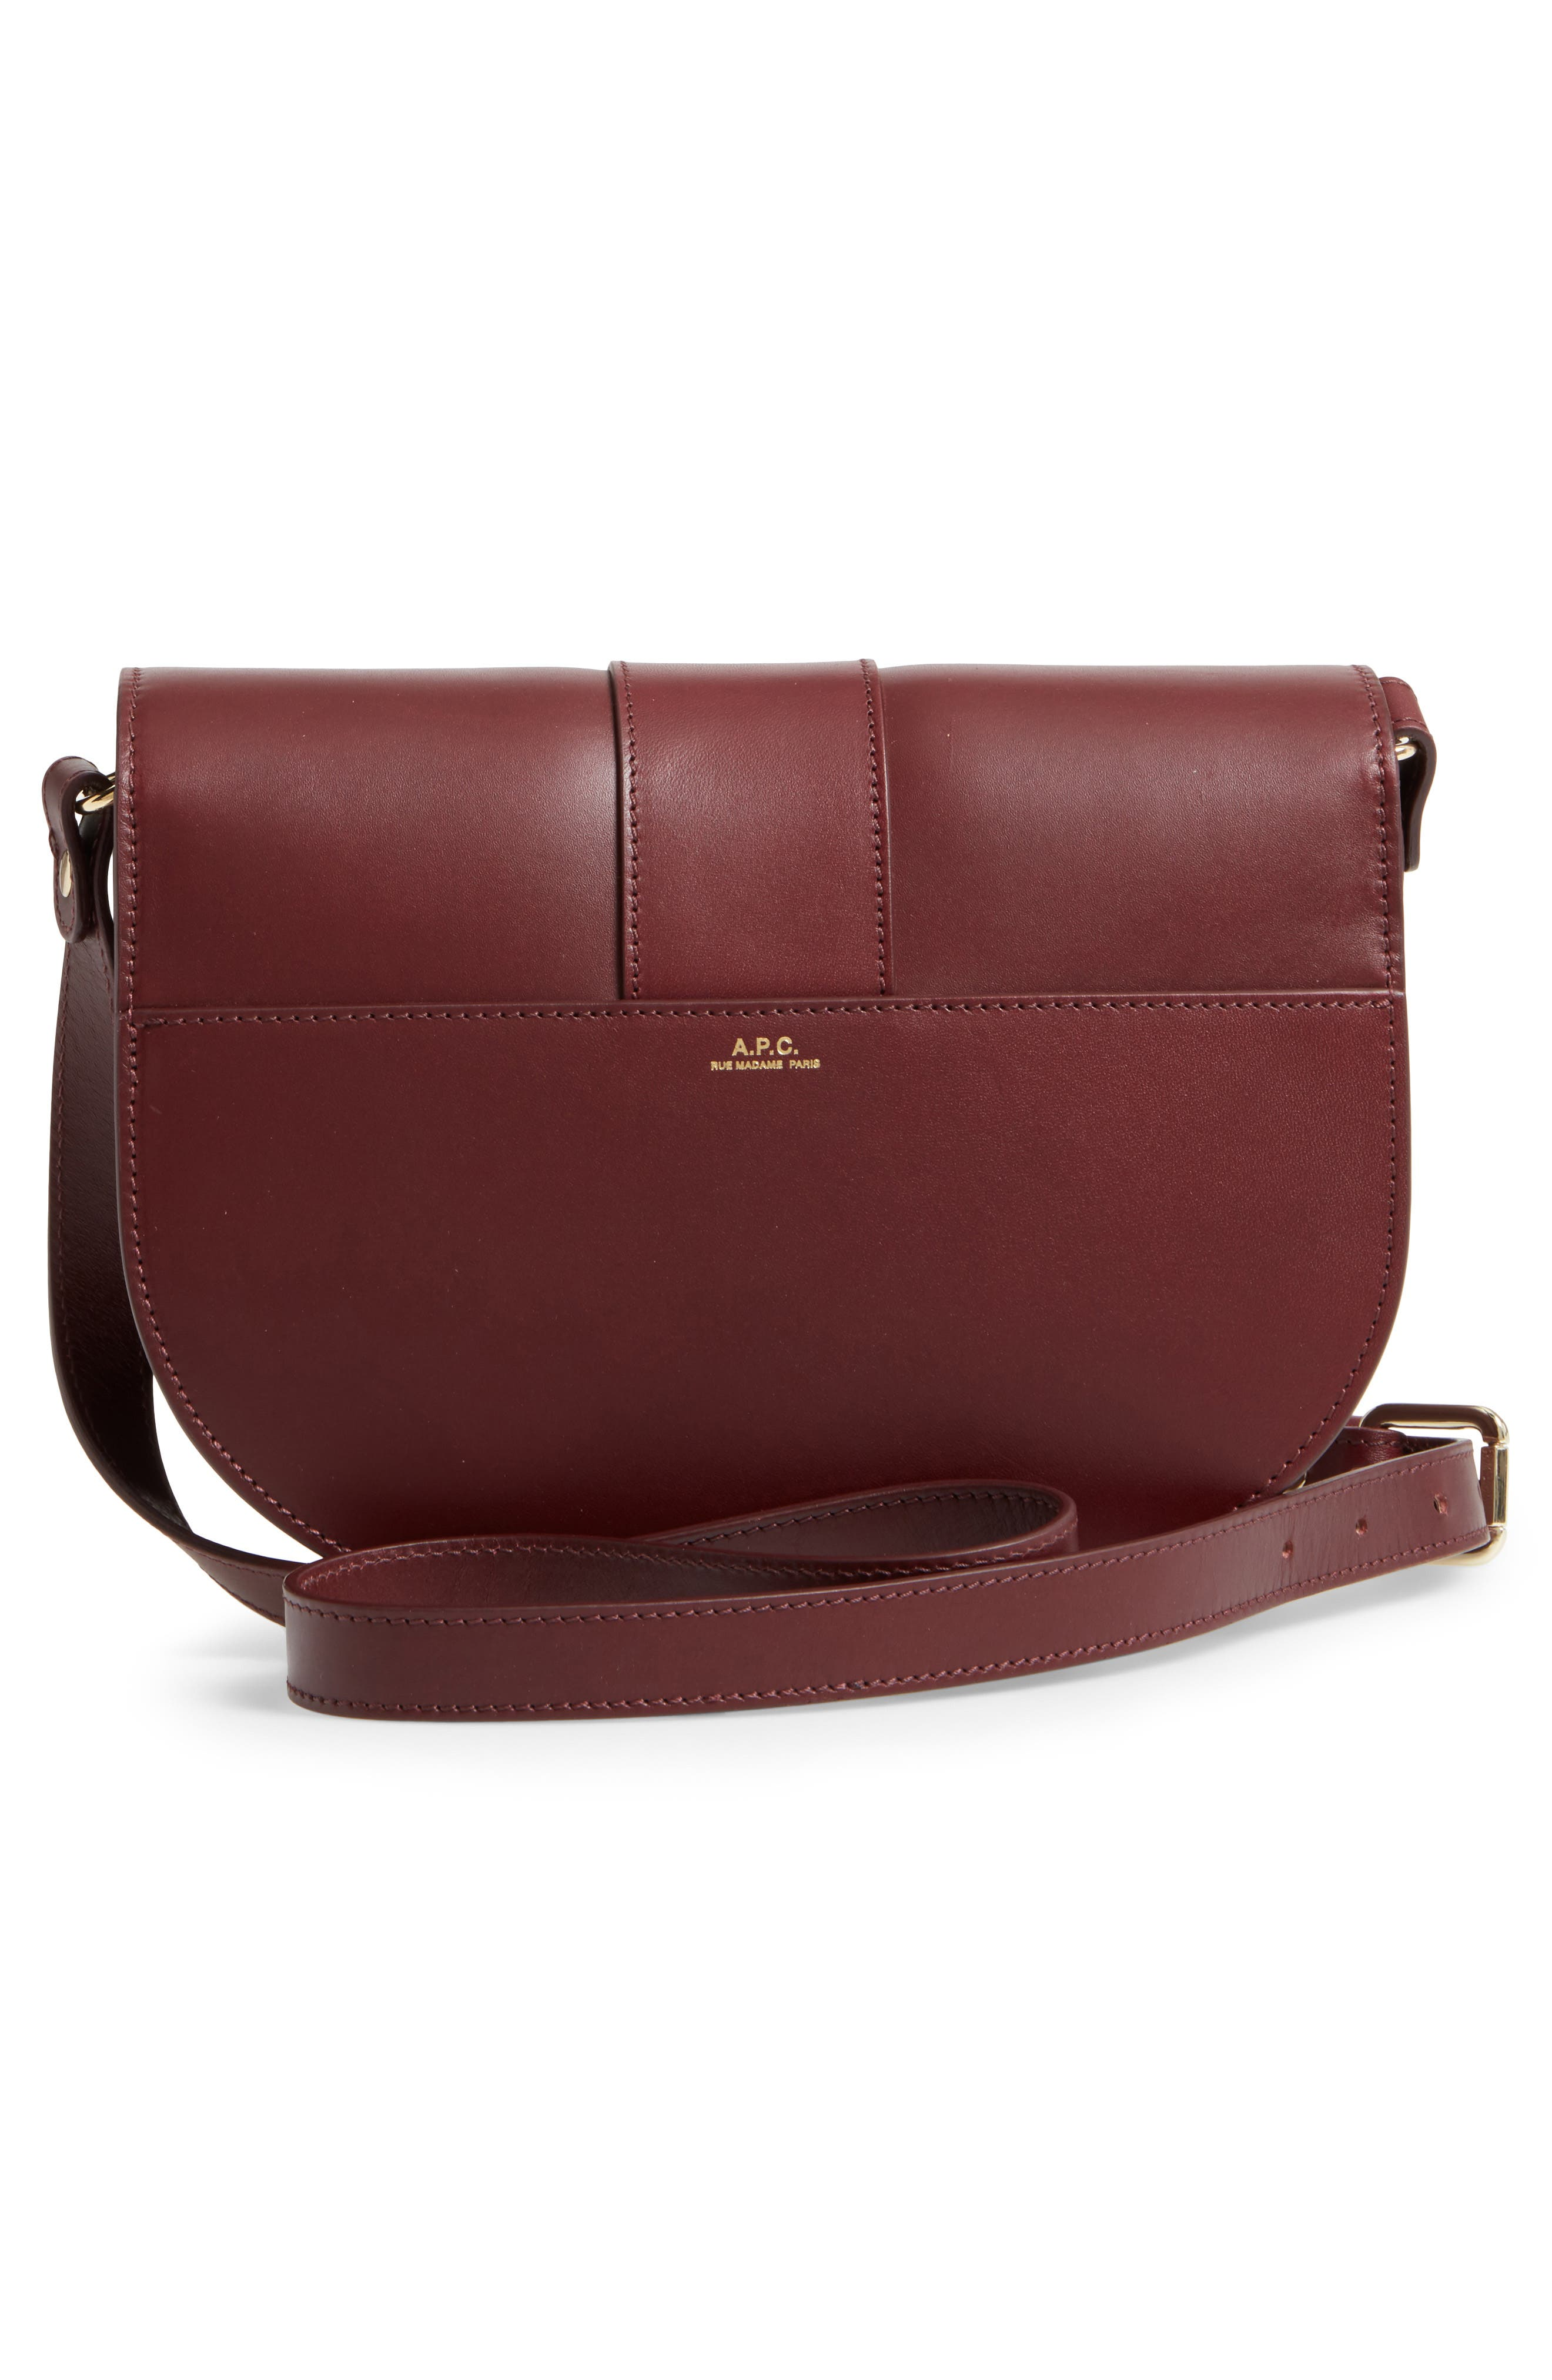 Soho Calfskin Leather Saddle Bag,                             Alternate thumbnail 3, color,                             600